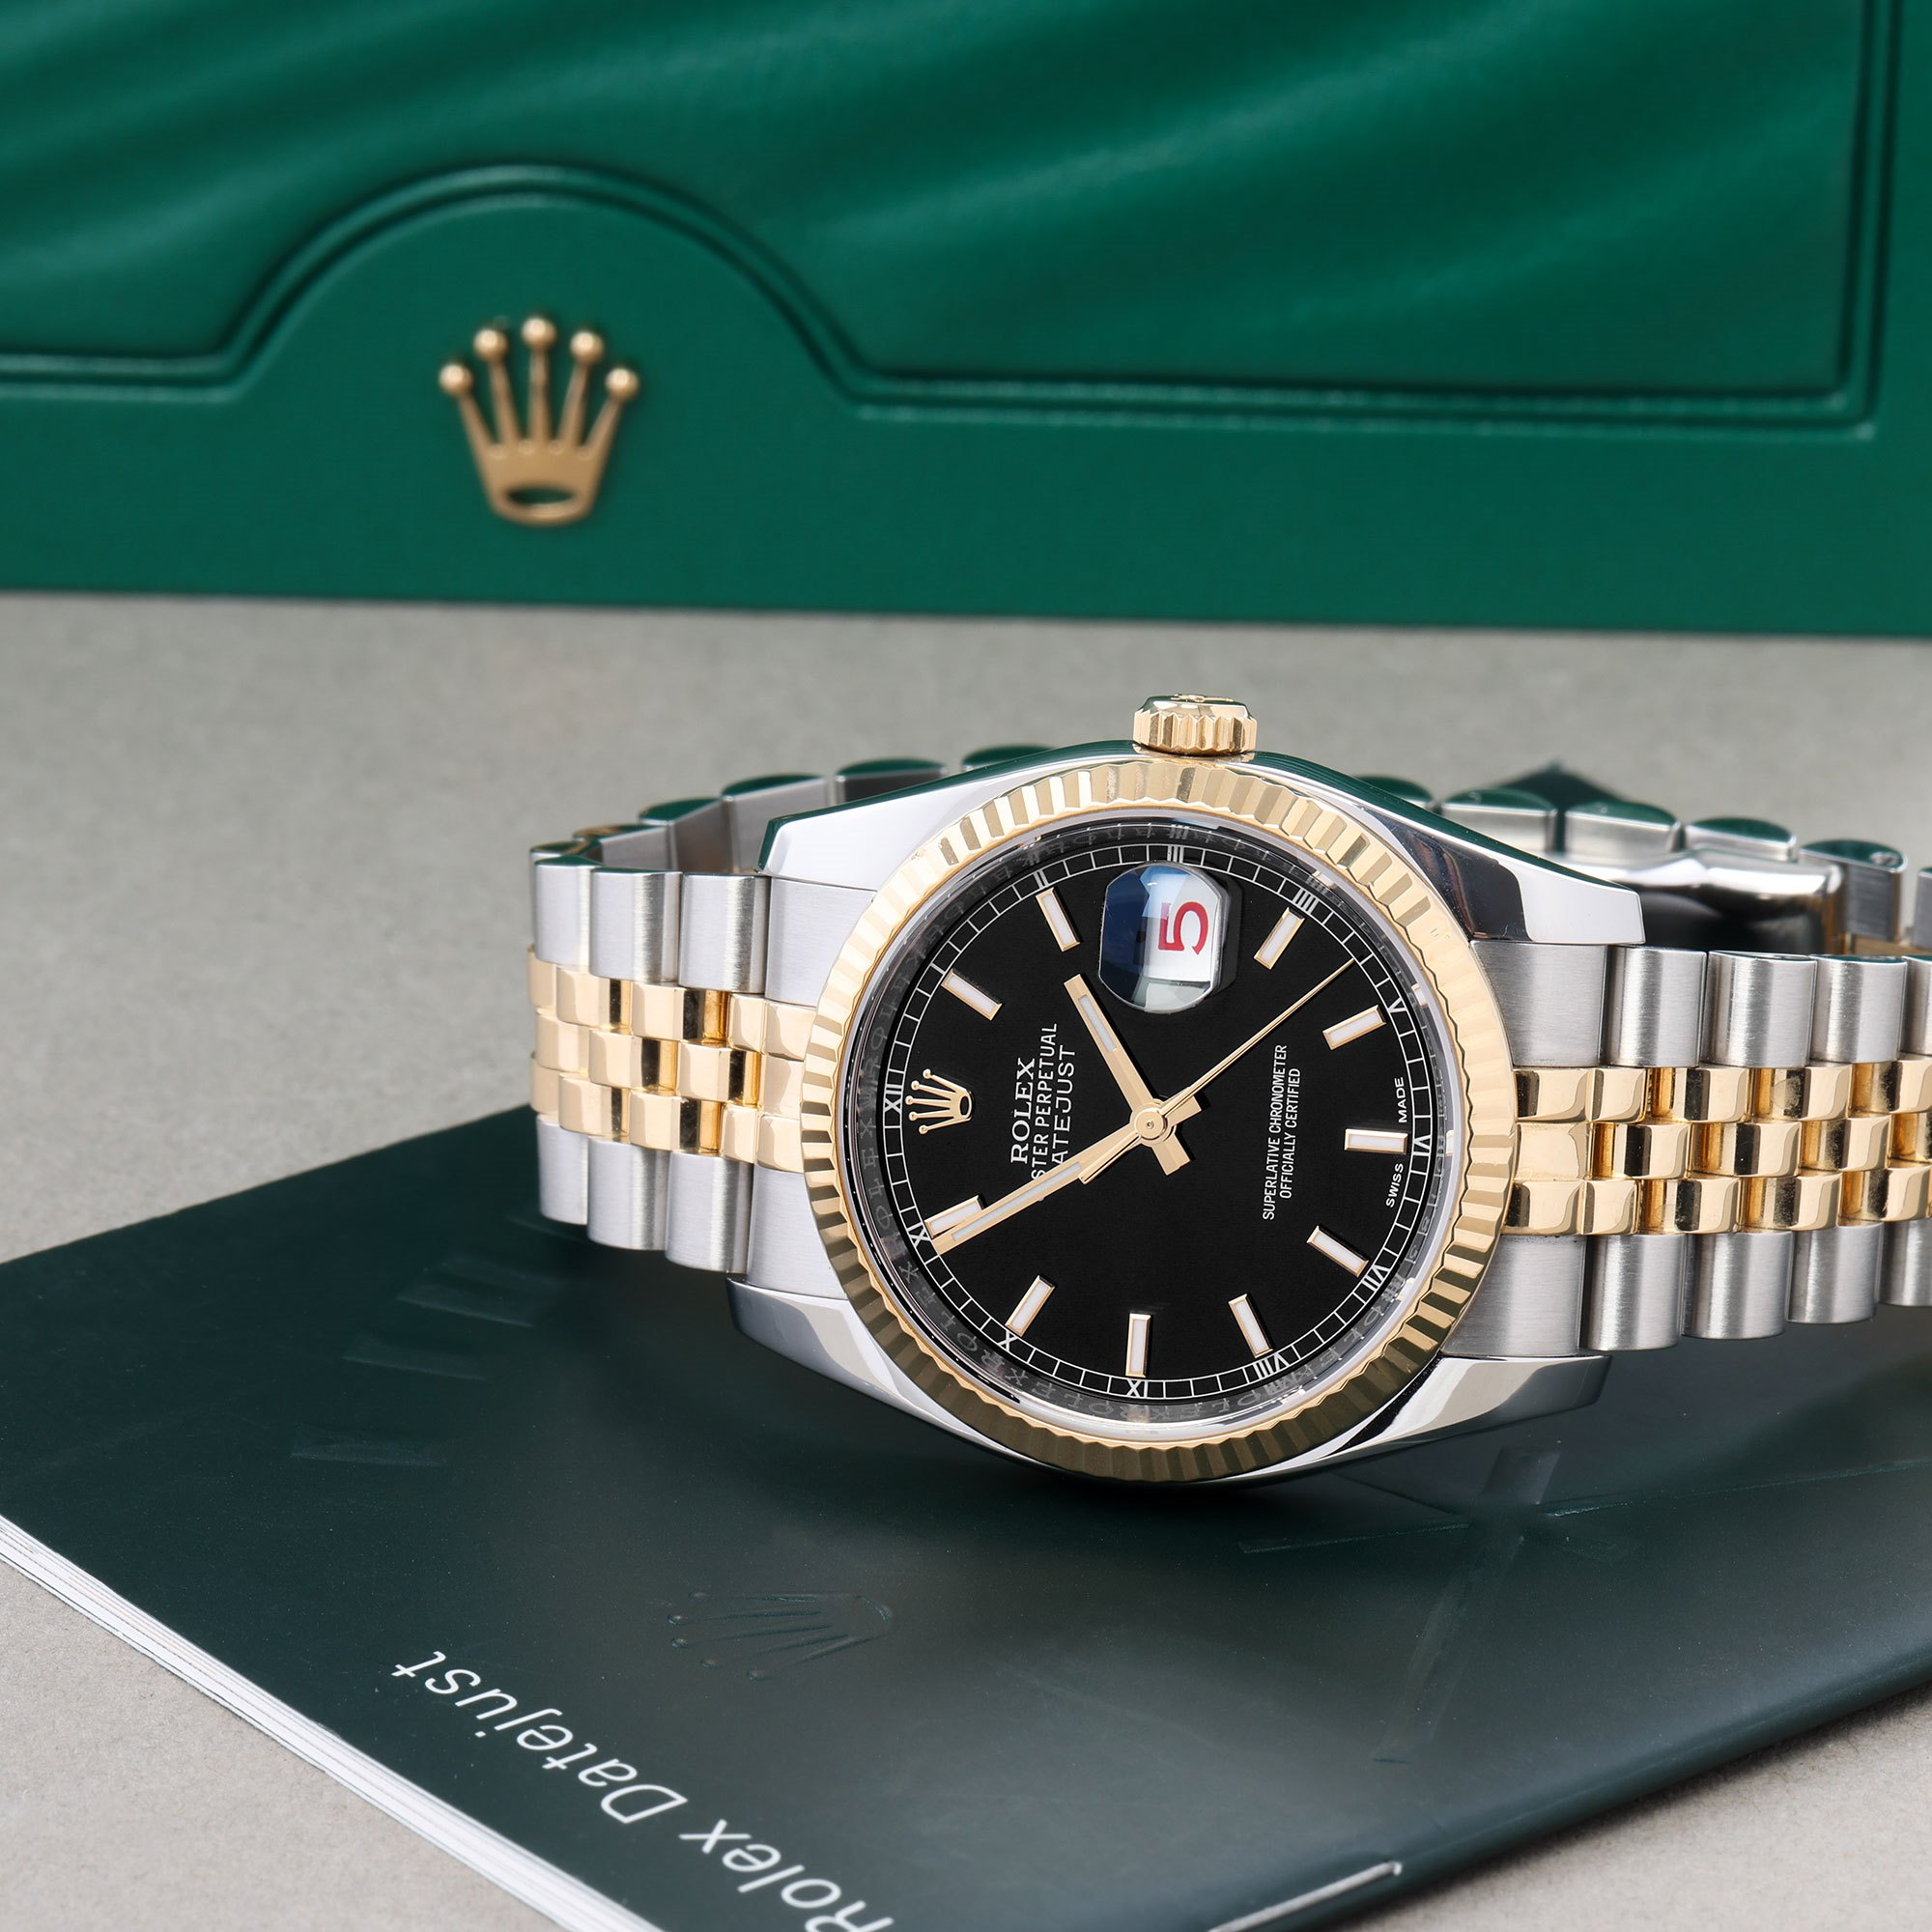 Rolex Datejust 18K Yellow Gold & Stainless Steel 116233